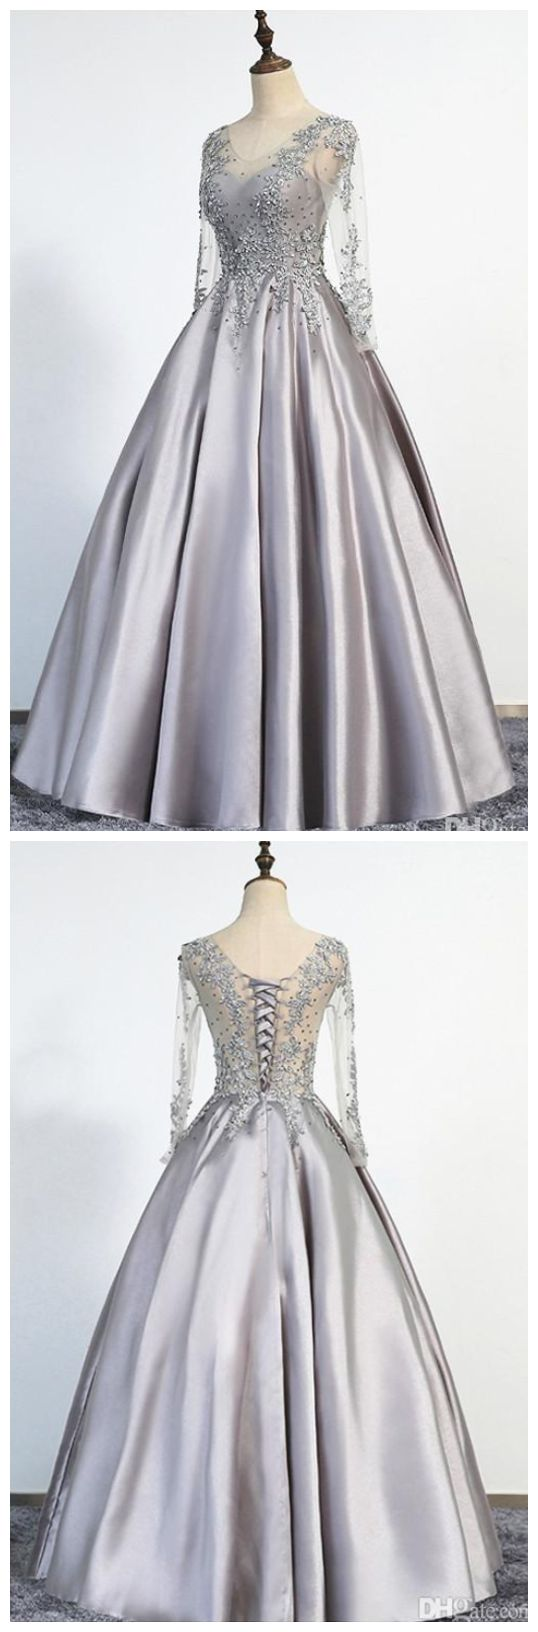 Cheap prom dresses ,Elegant Sliver Evening Dresses A-Line Scoop Illusion Lace Up Long Sleeves Floor Length Appliques Beading Real Picture Prom Gowns